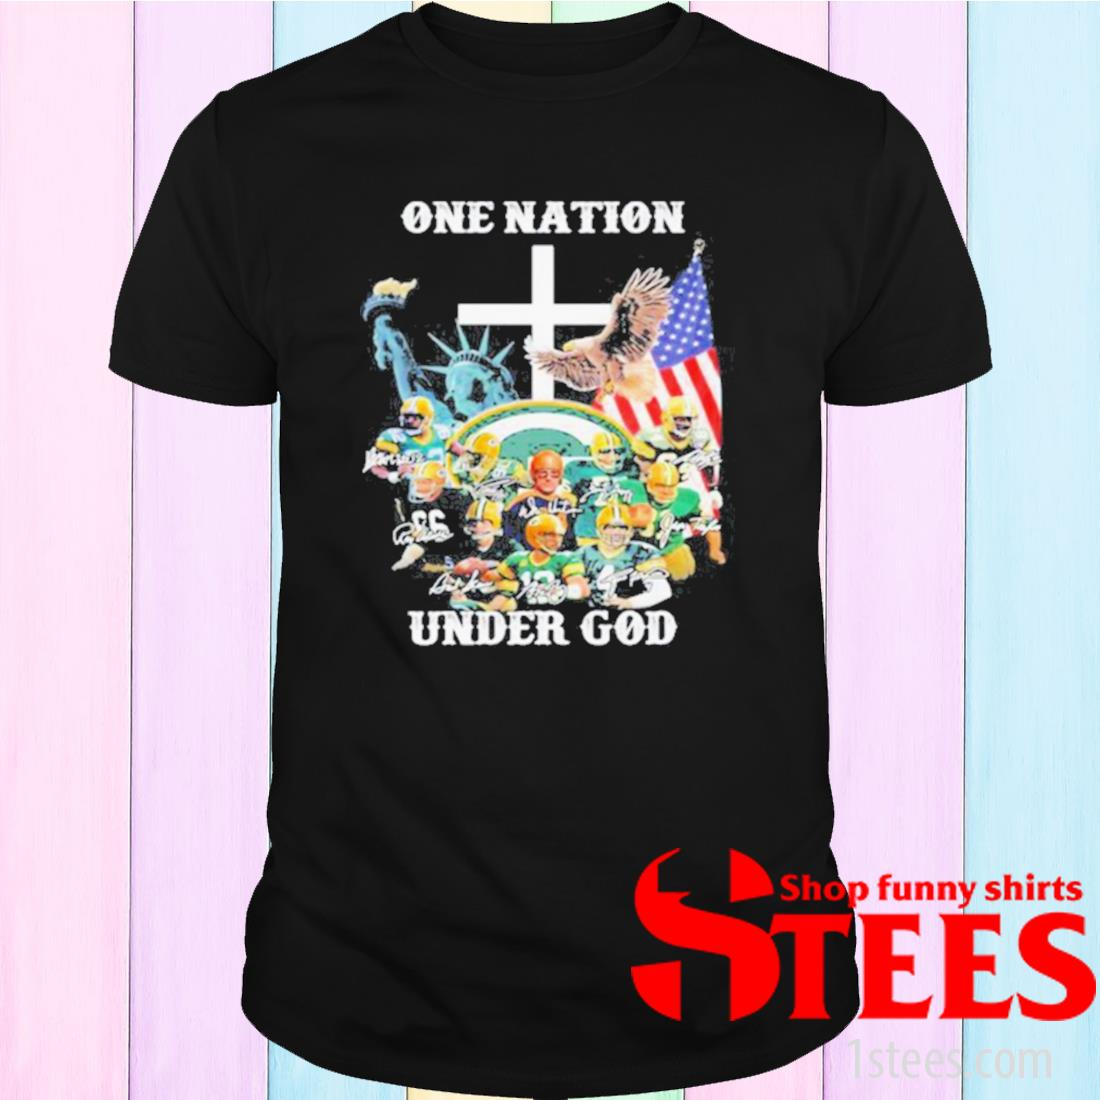 One Nation Under God Green Bay Packers Signature Shirt